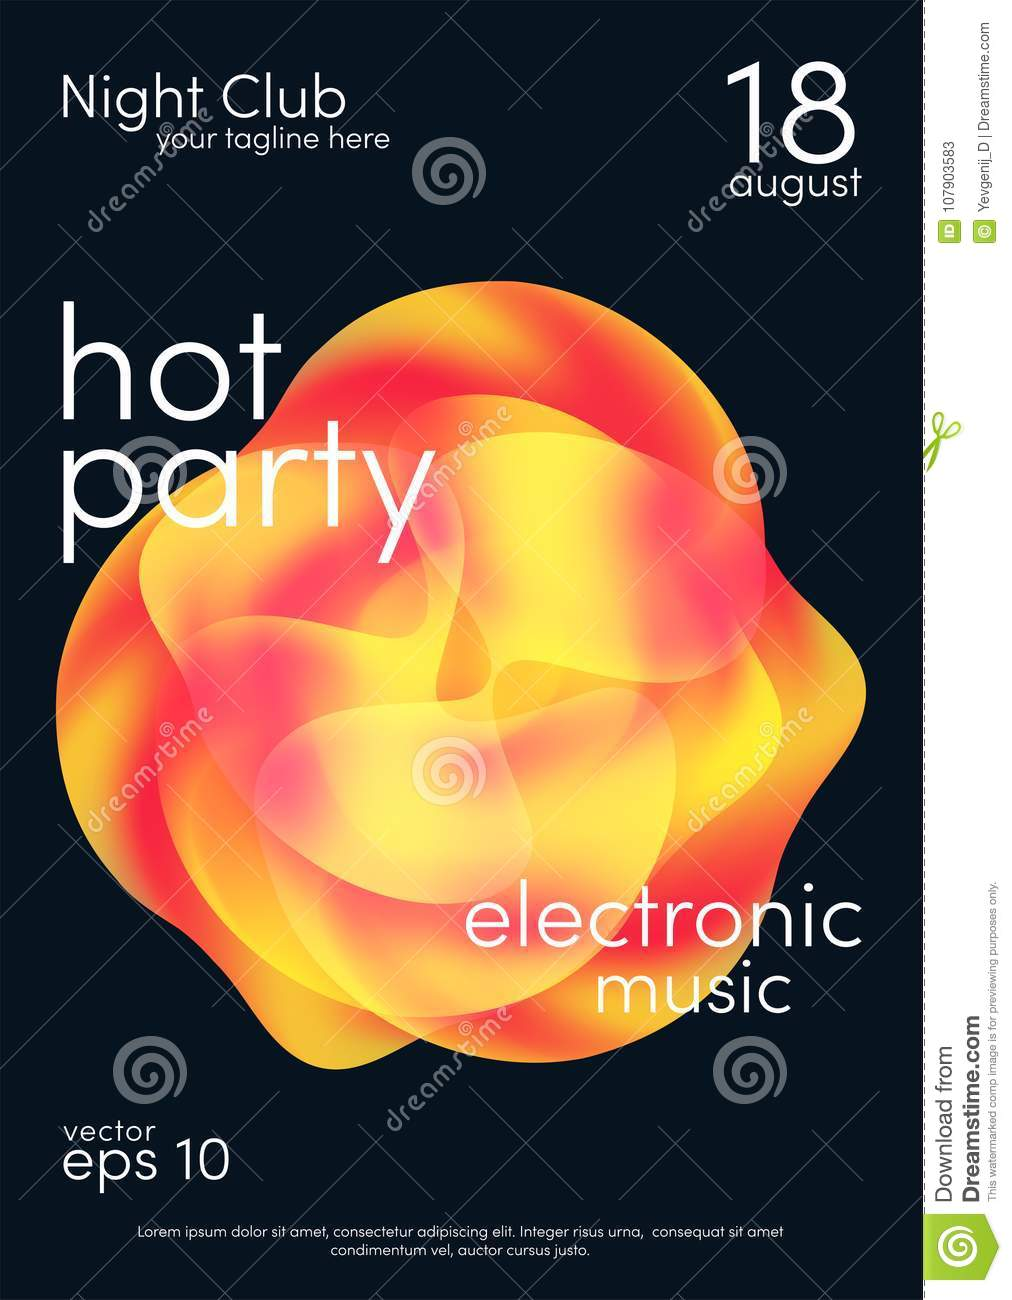 Trendy Poster Designs: Dance Party Poster. Music Poster Background Template With